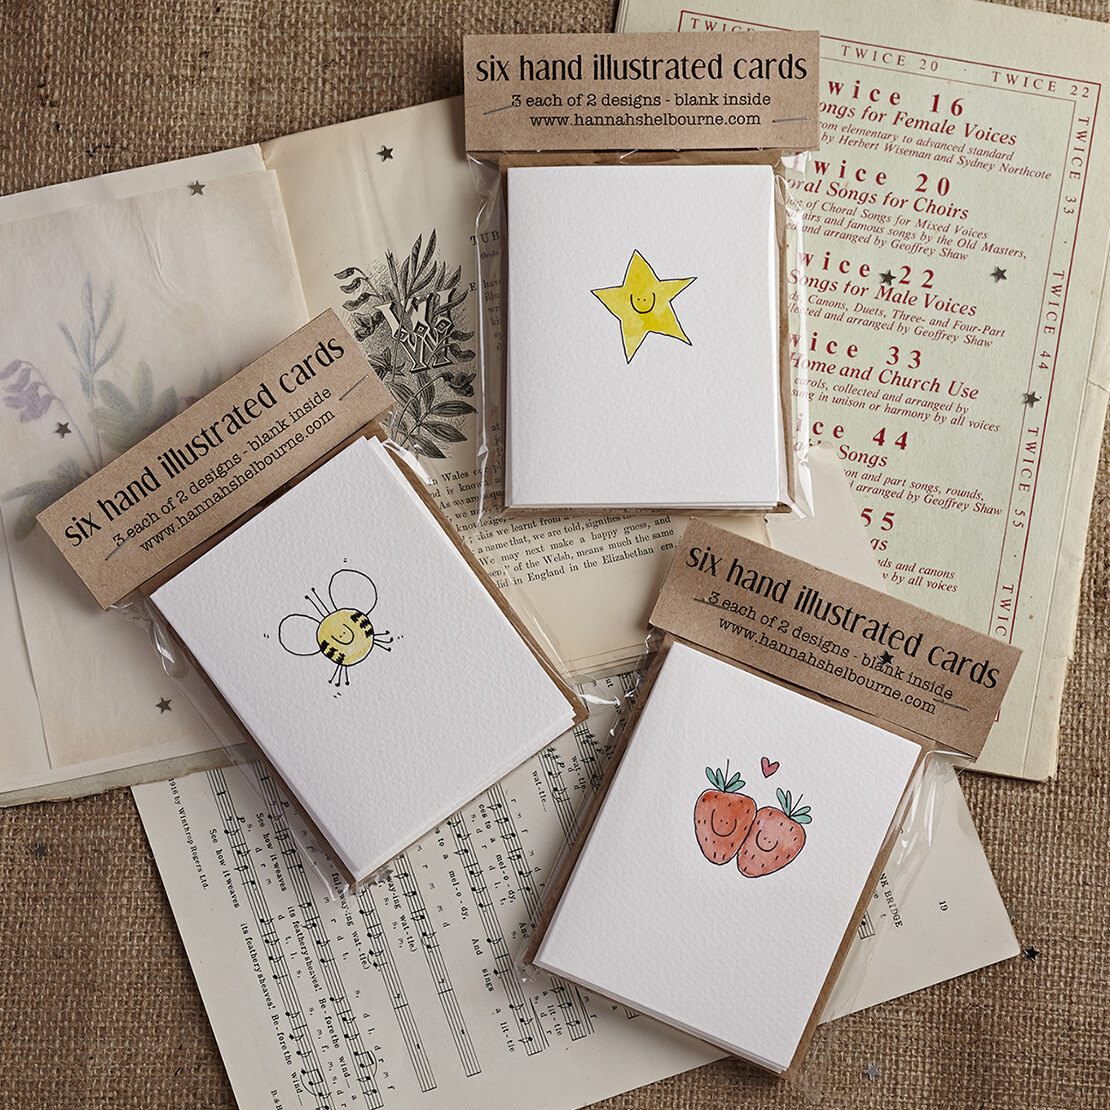 Pack of Six Hand Illustrated cards - choose your own designs